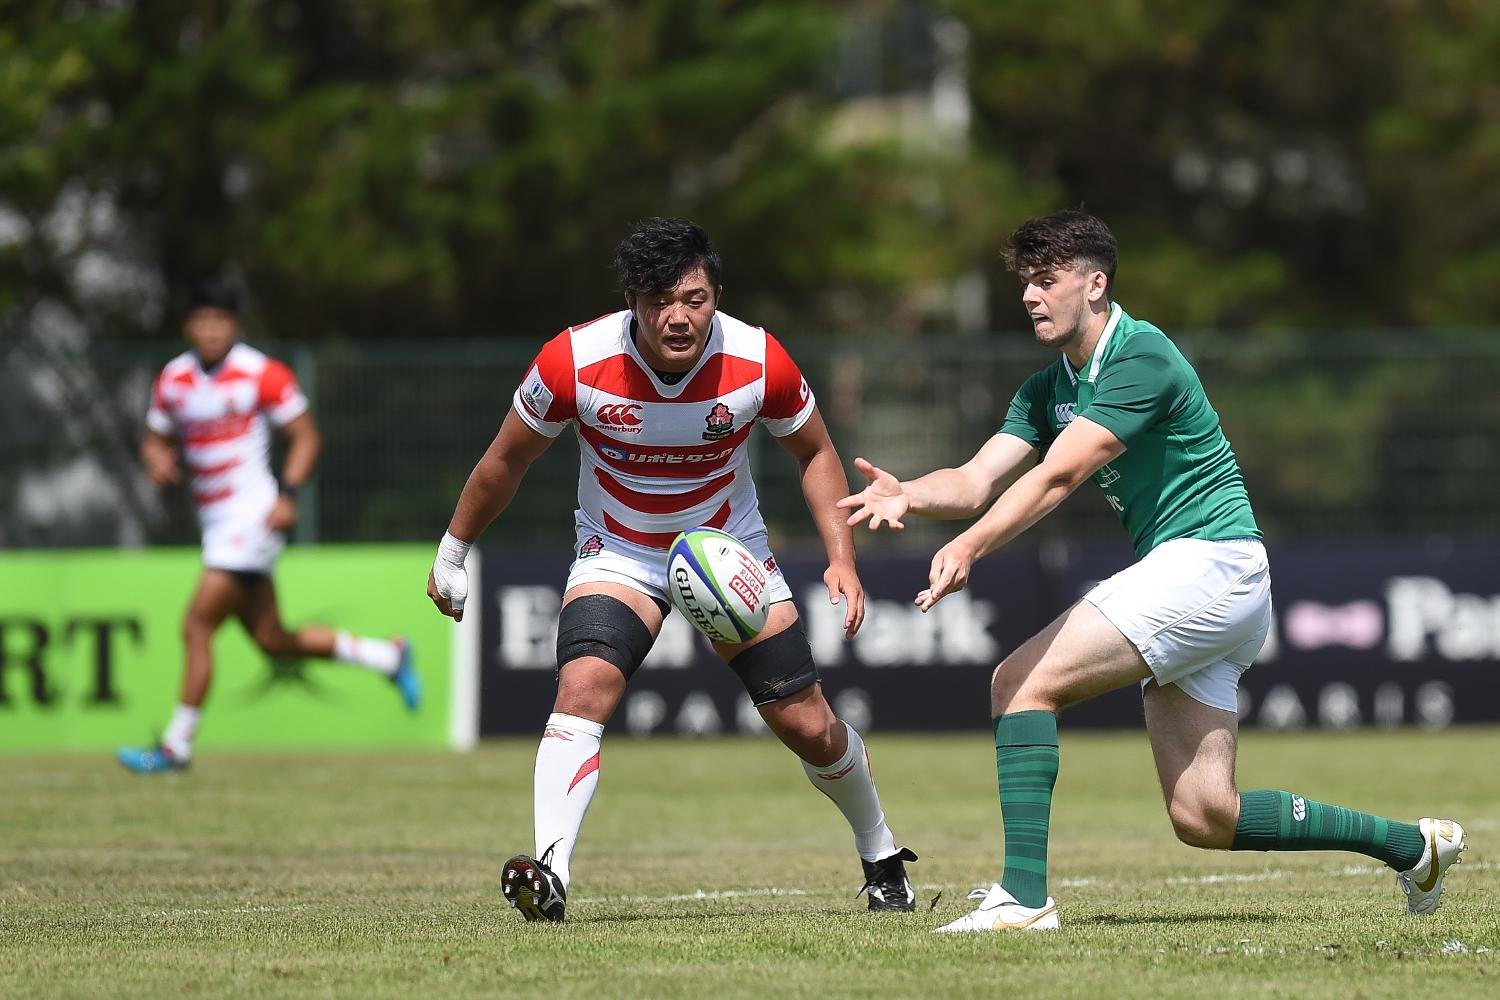 World Rugby U20 Championship 2018: 11th place play-off - Ireland v Japan